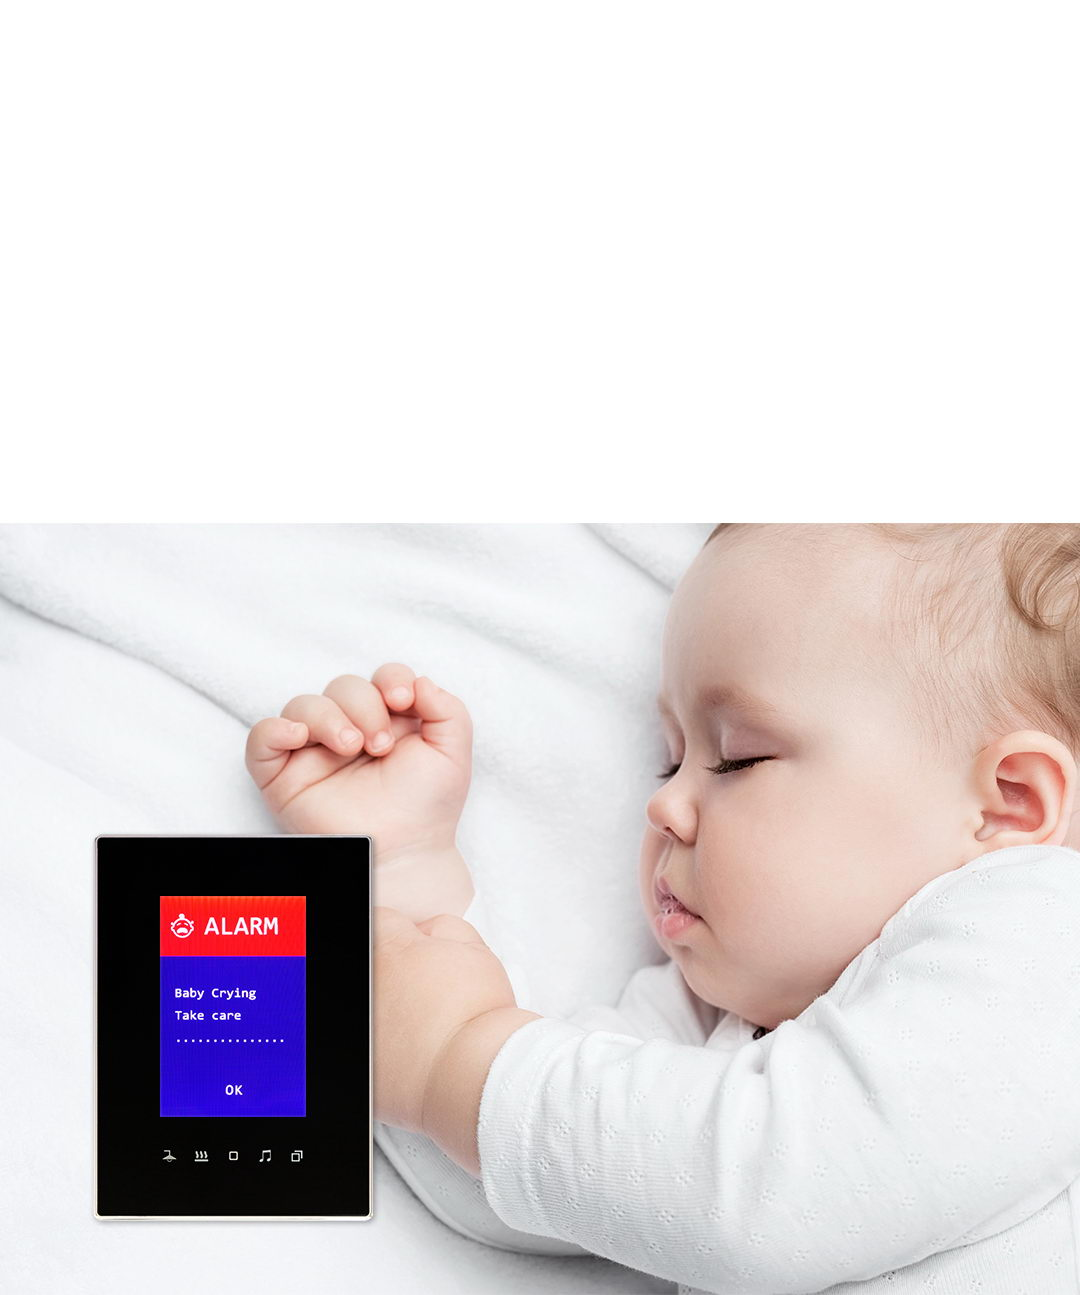 TIS Luna TFT is a baby monitor also with buzzer alert and messages function